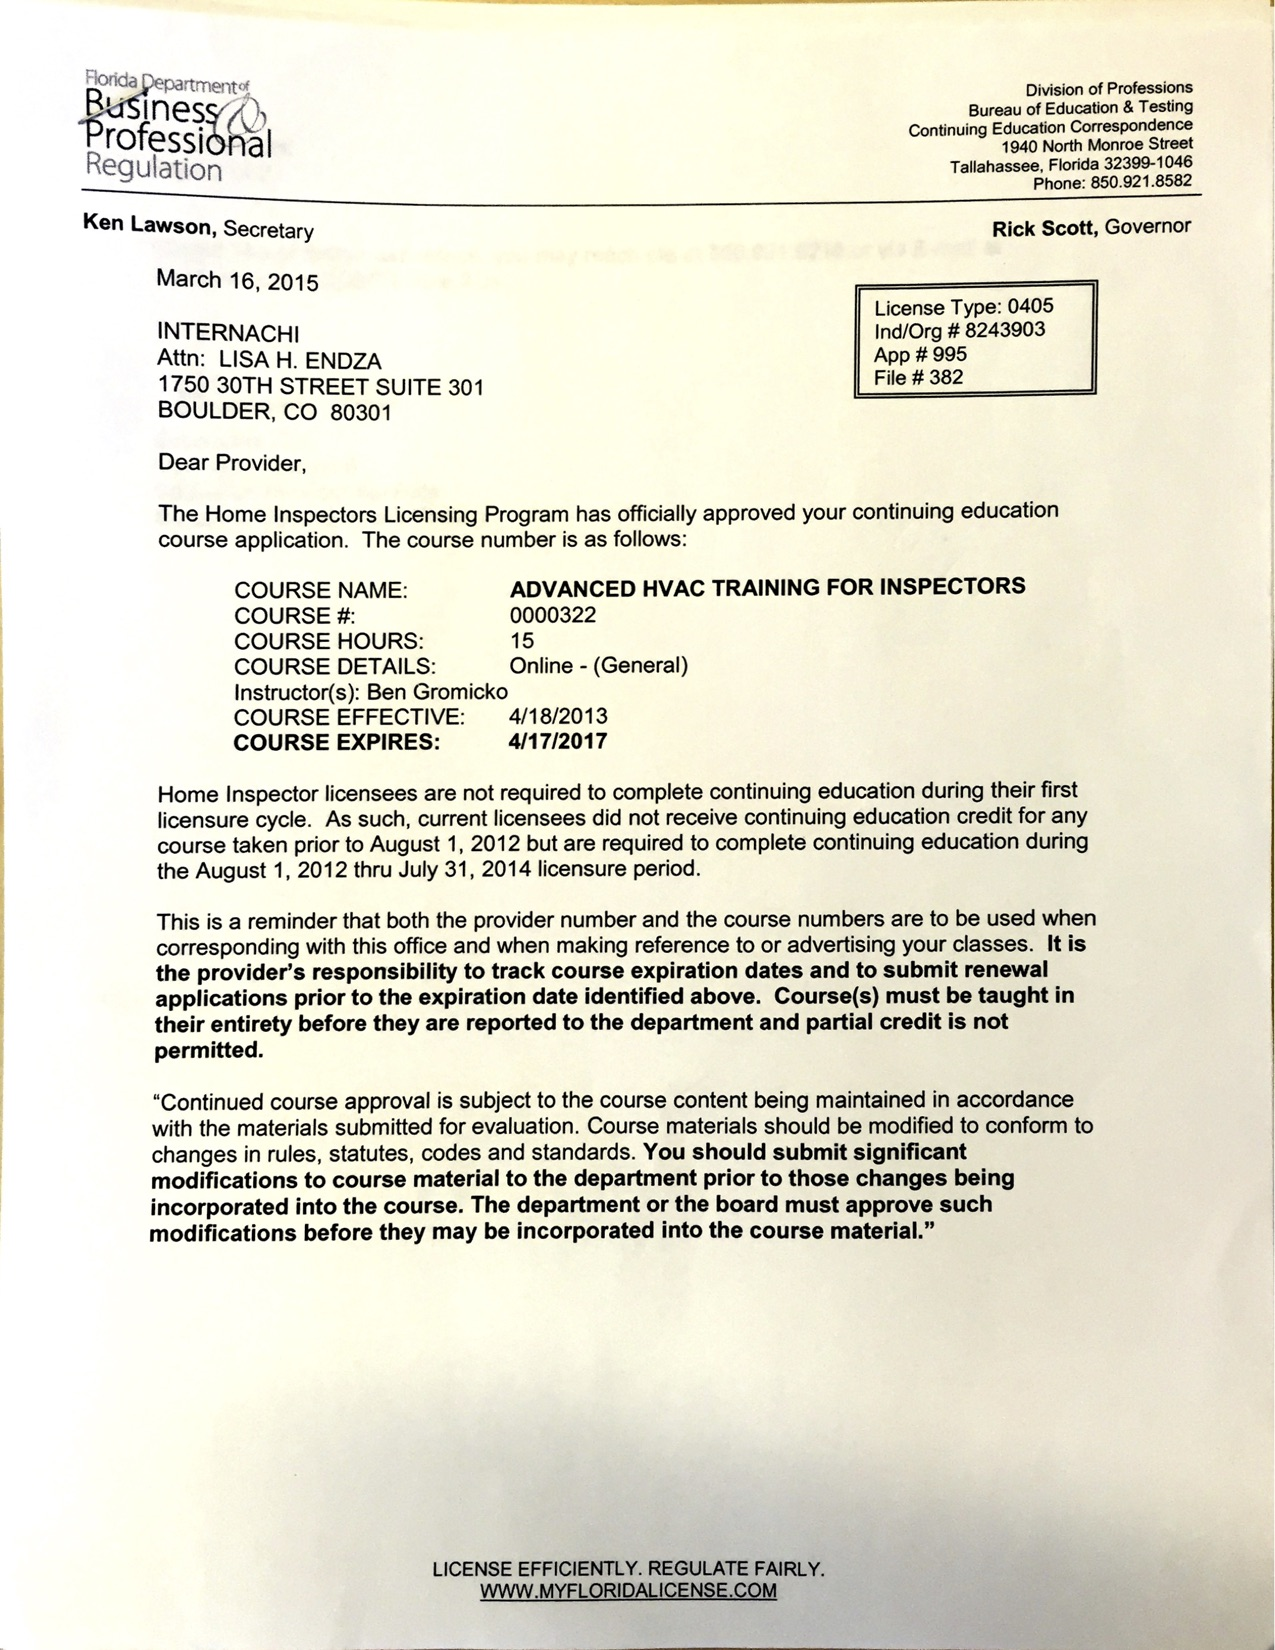 View Approval Letter For Advanced HVAC Training Course